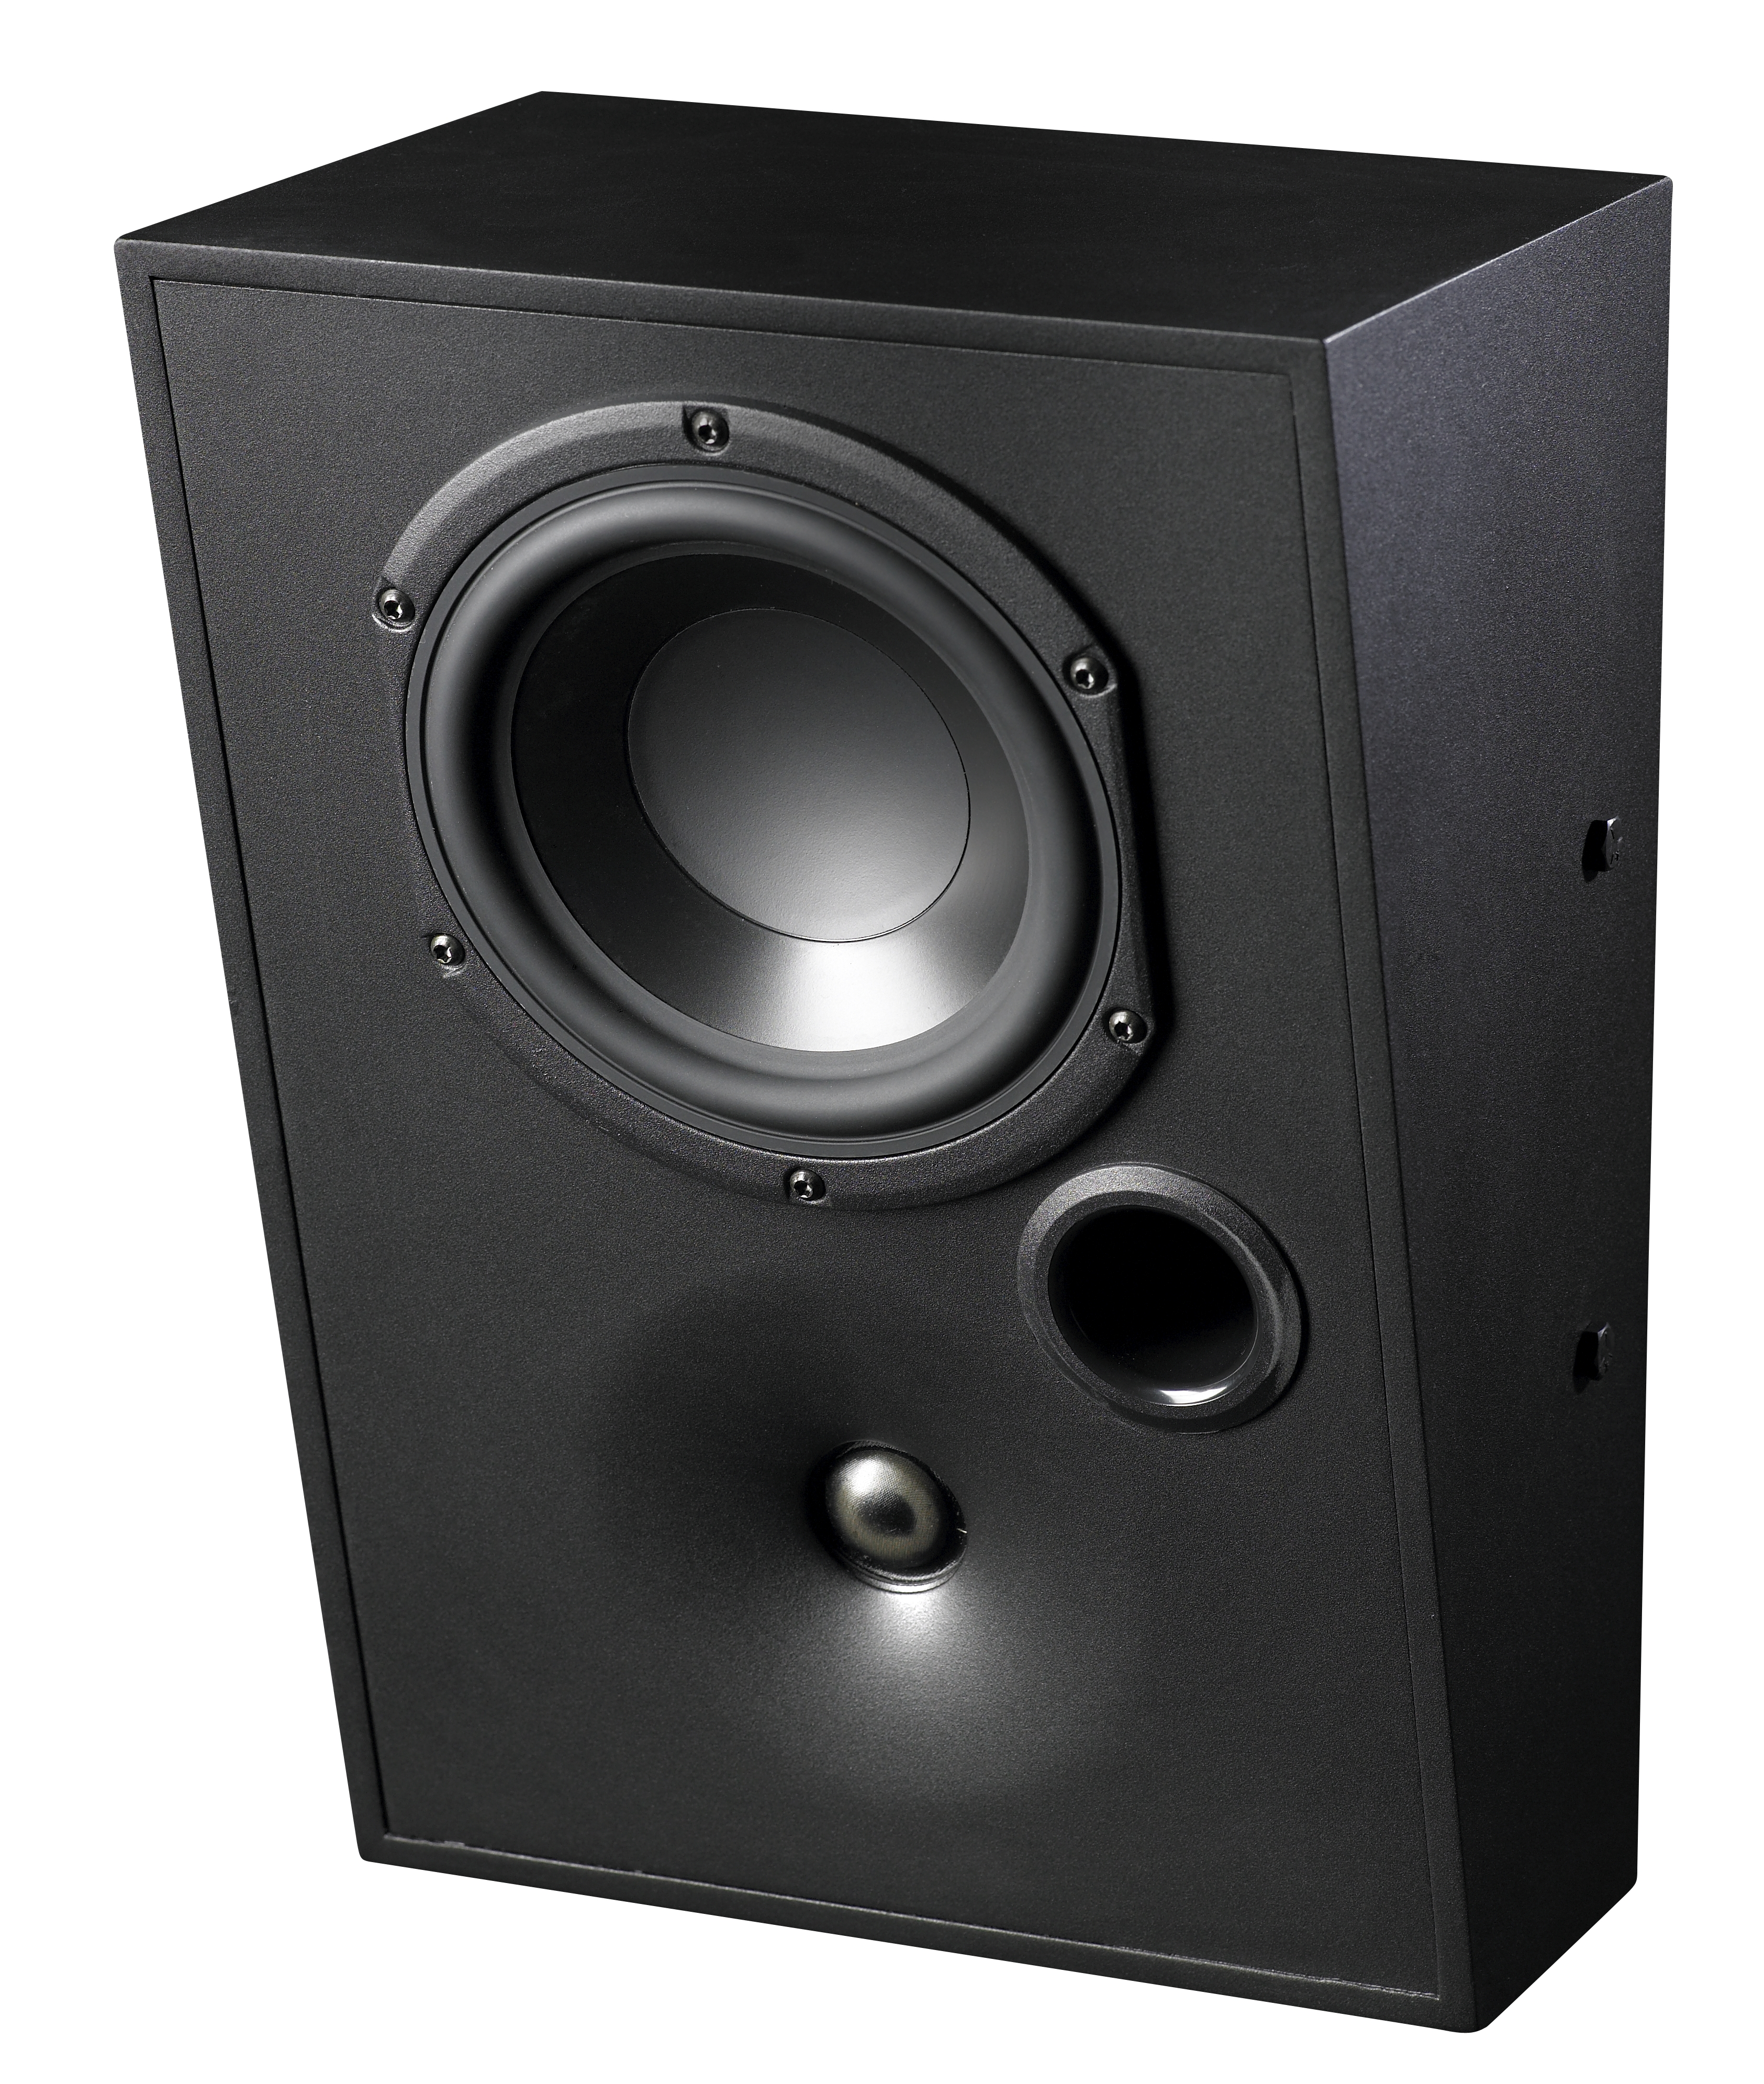 Krix phonix extreme accurate powerful compact surround speaker